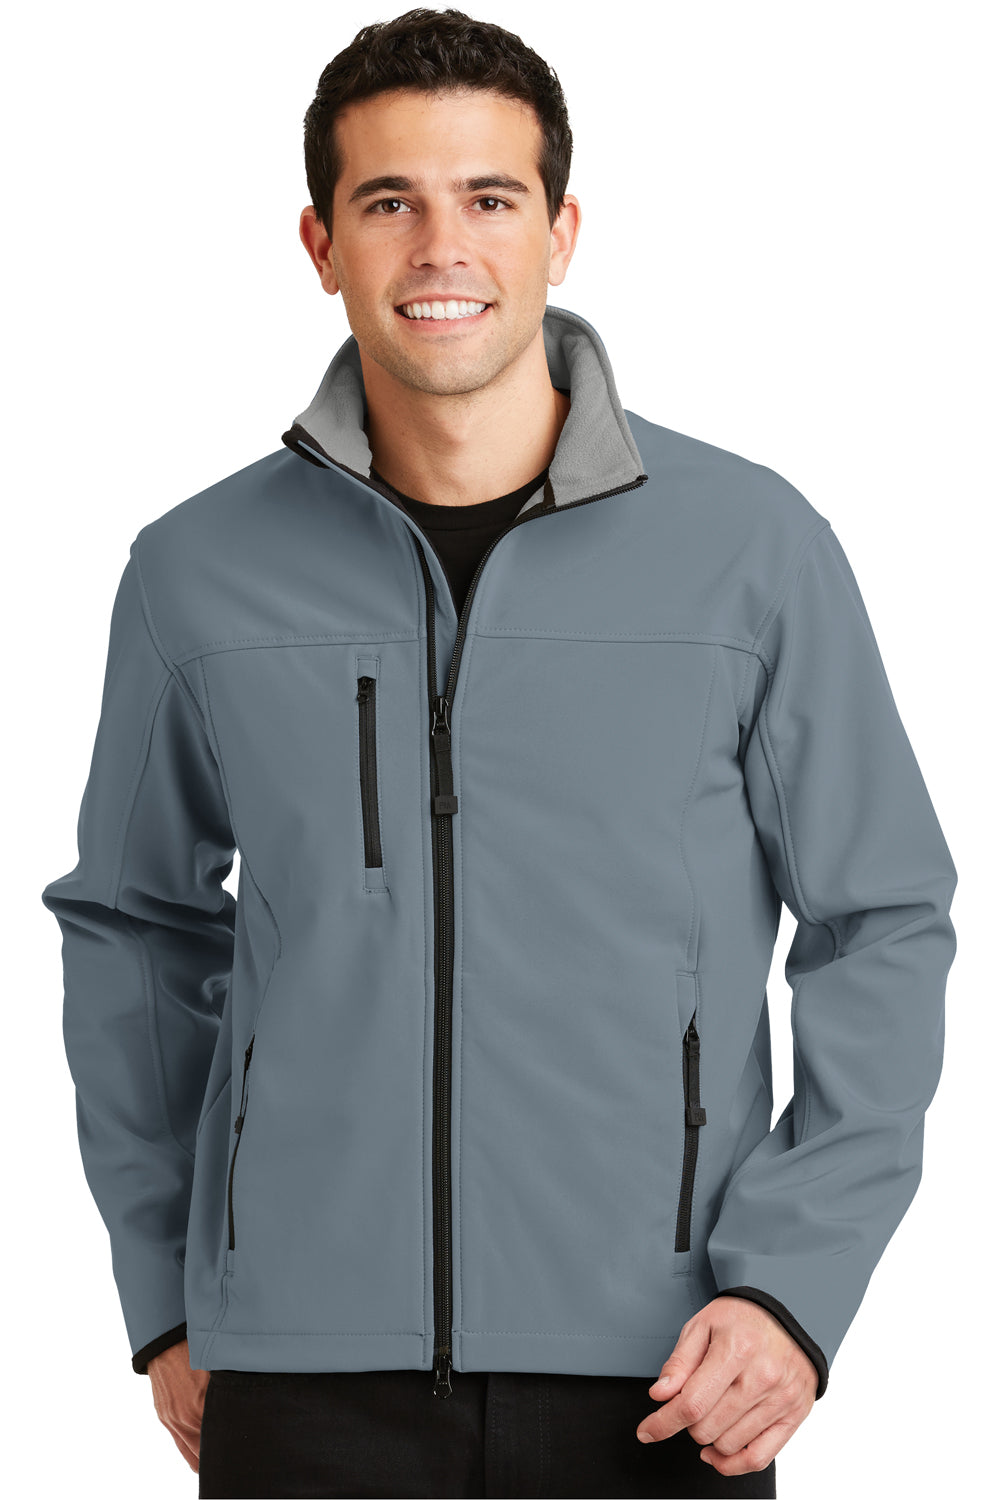 Port Authority J790 Mens Glacier Wind & Water Resistant Full Zip Jacket Atlantic Blue Front